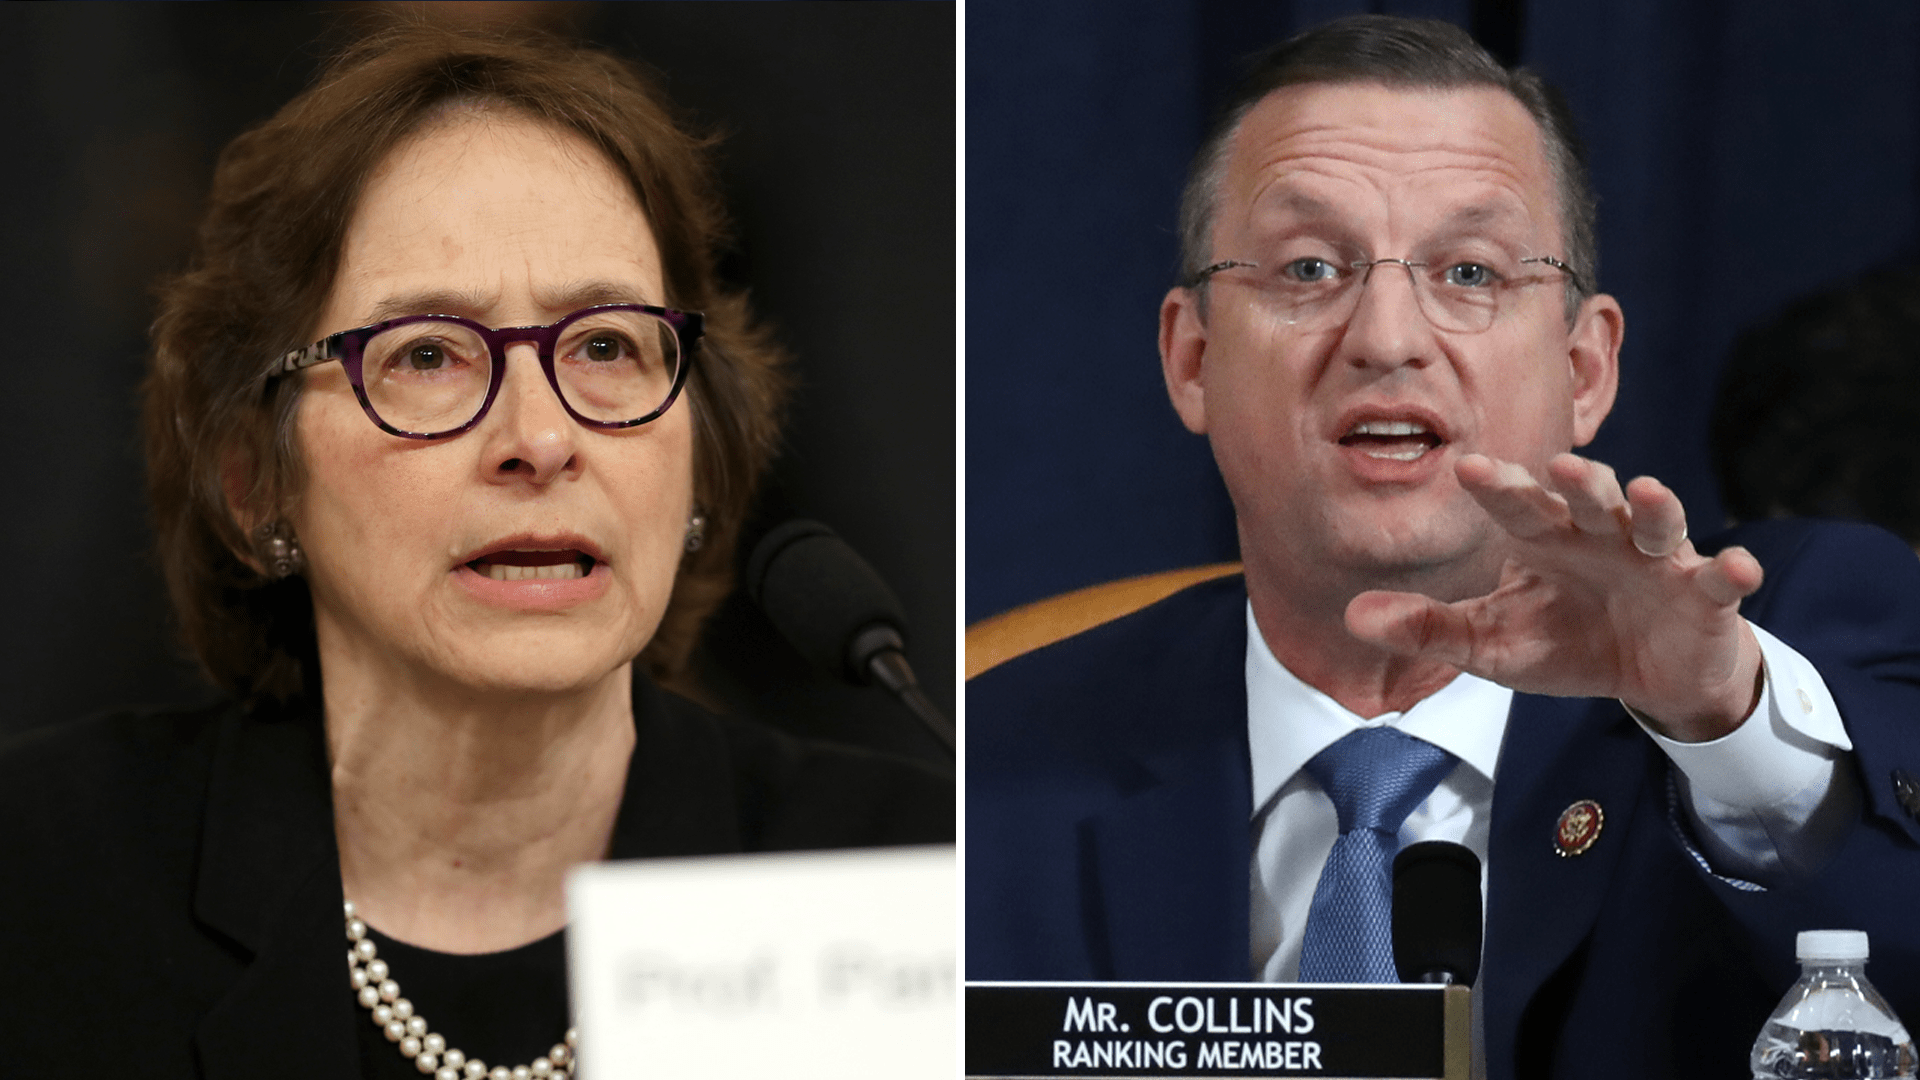 Law professor claps back at Rep. Doug Collins's insults